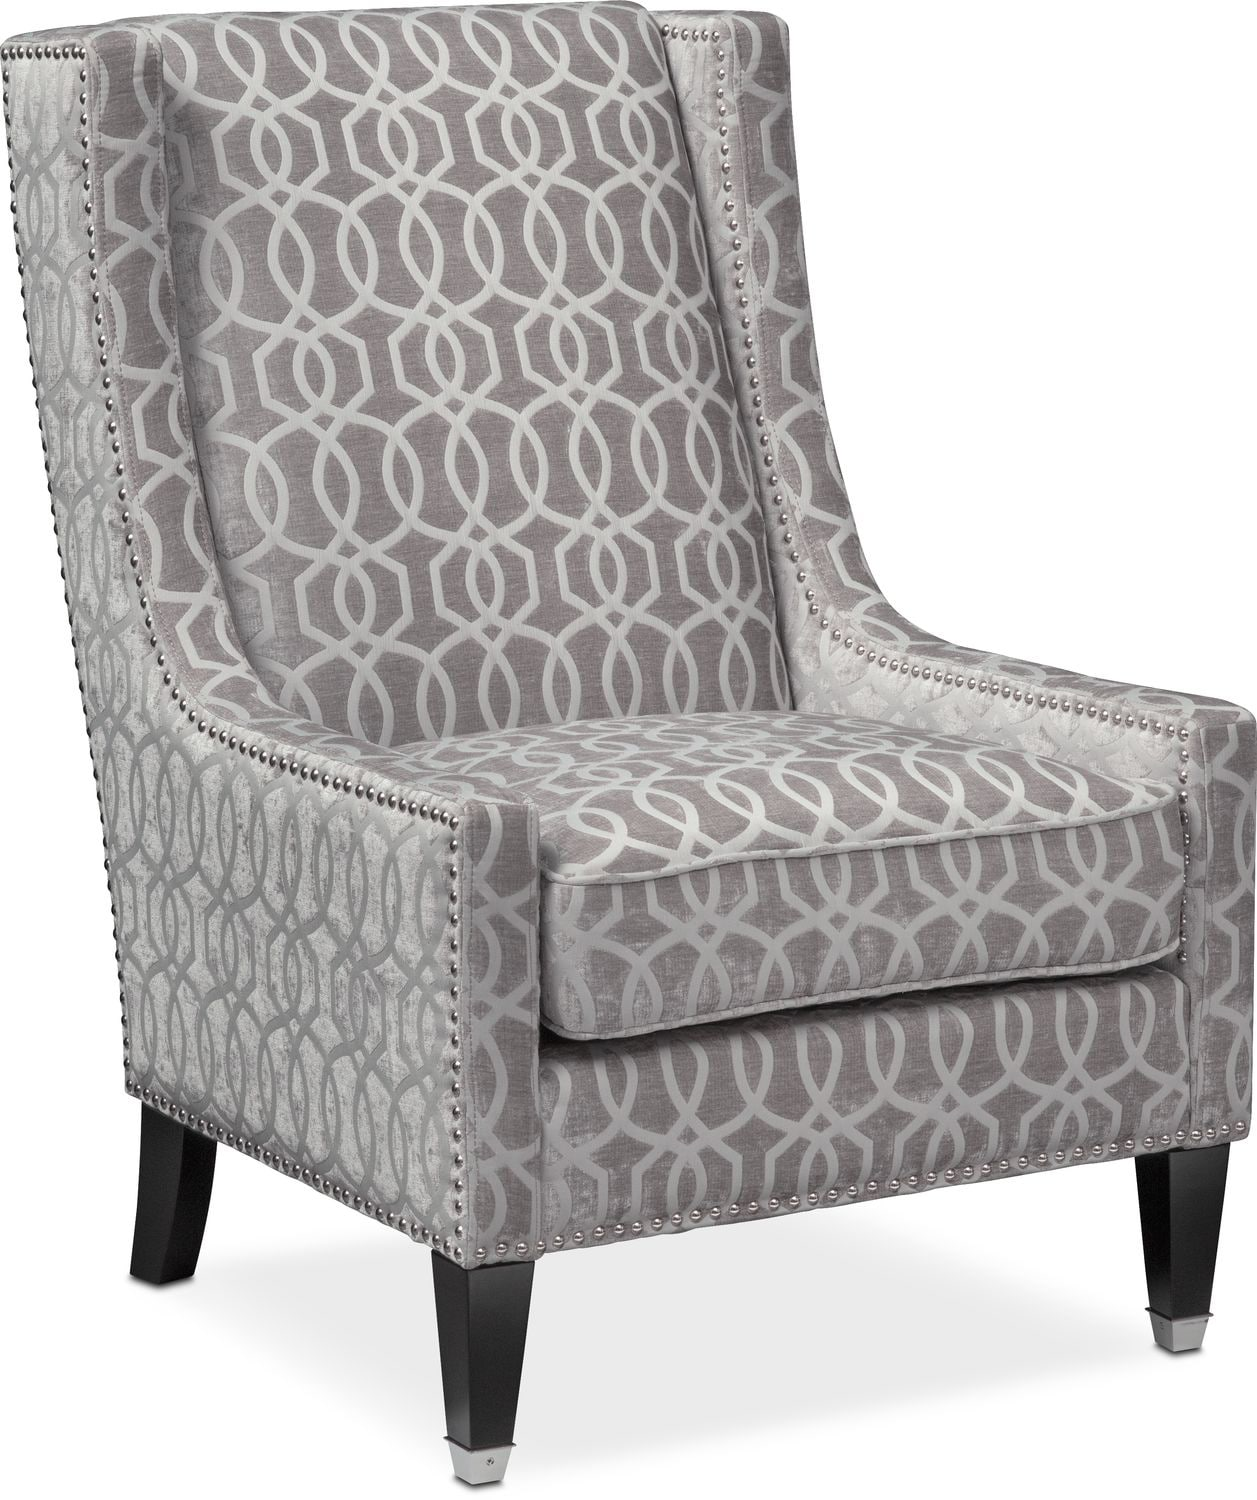 Venn Accent Chair Gray American Signature Furniture